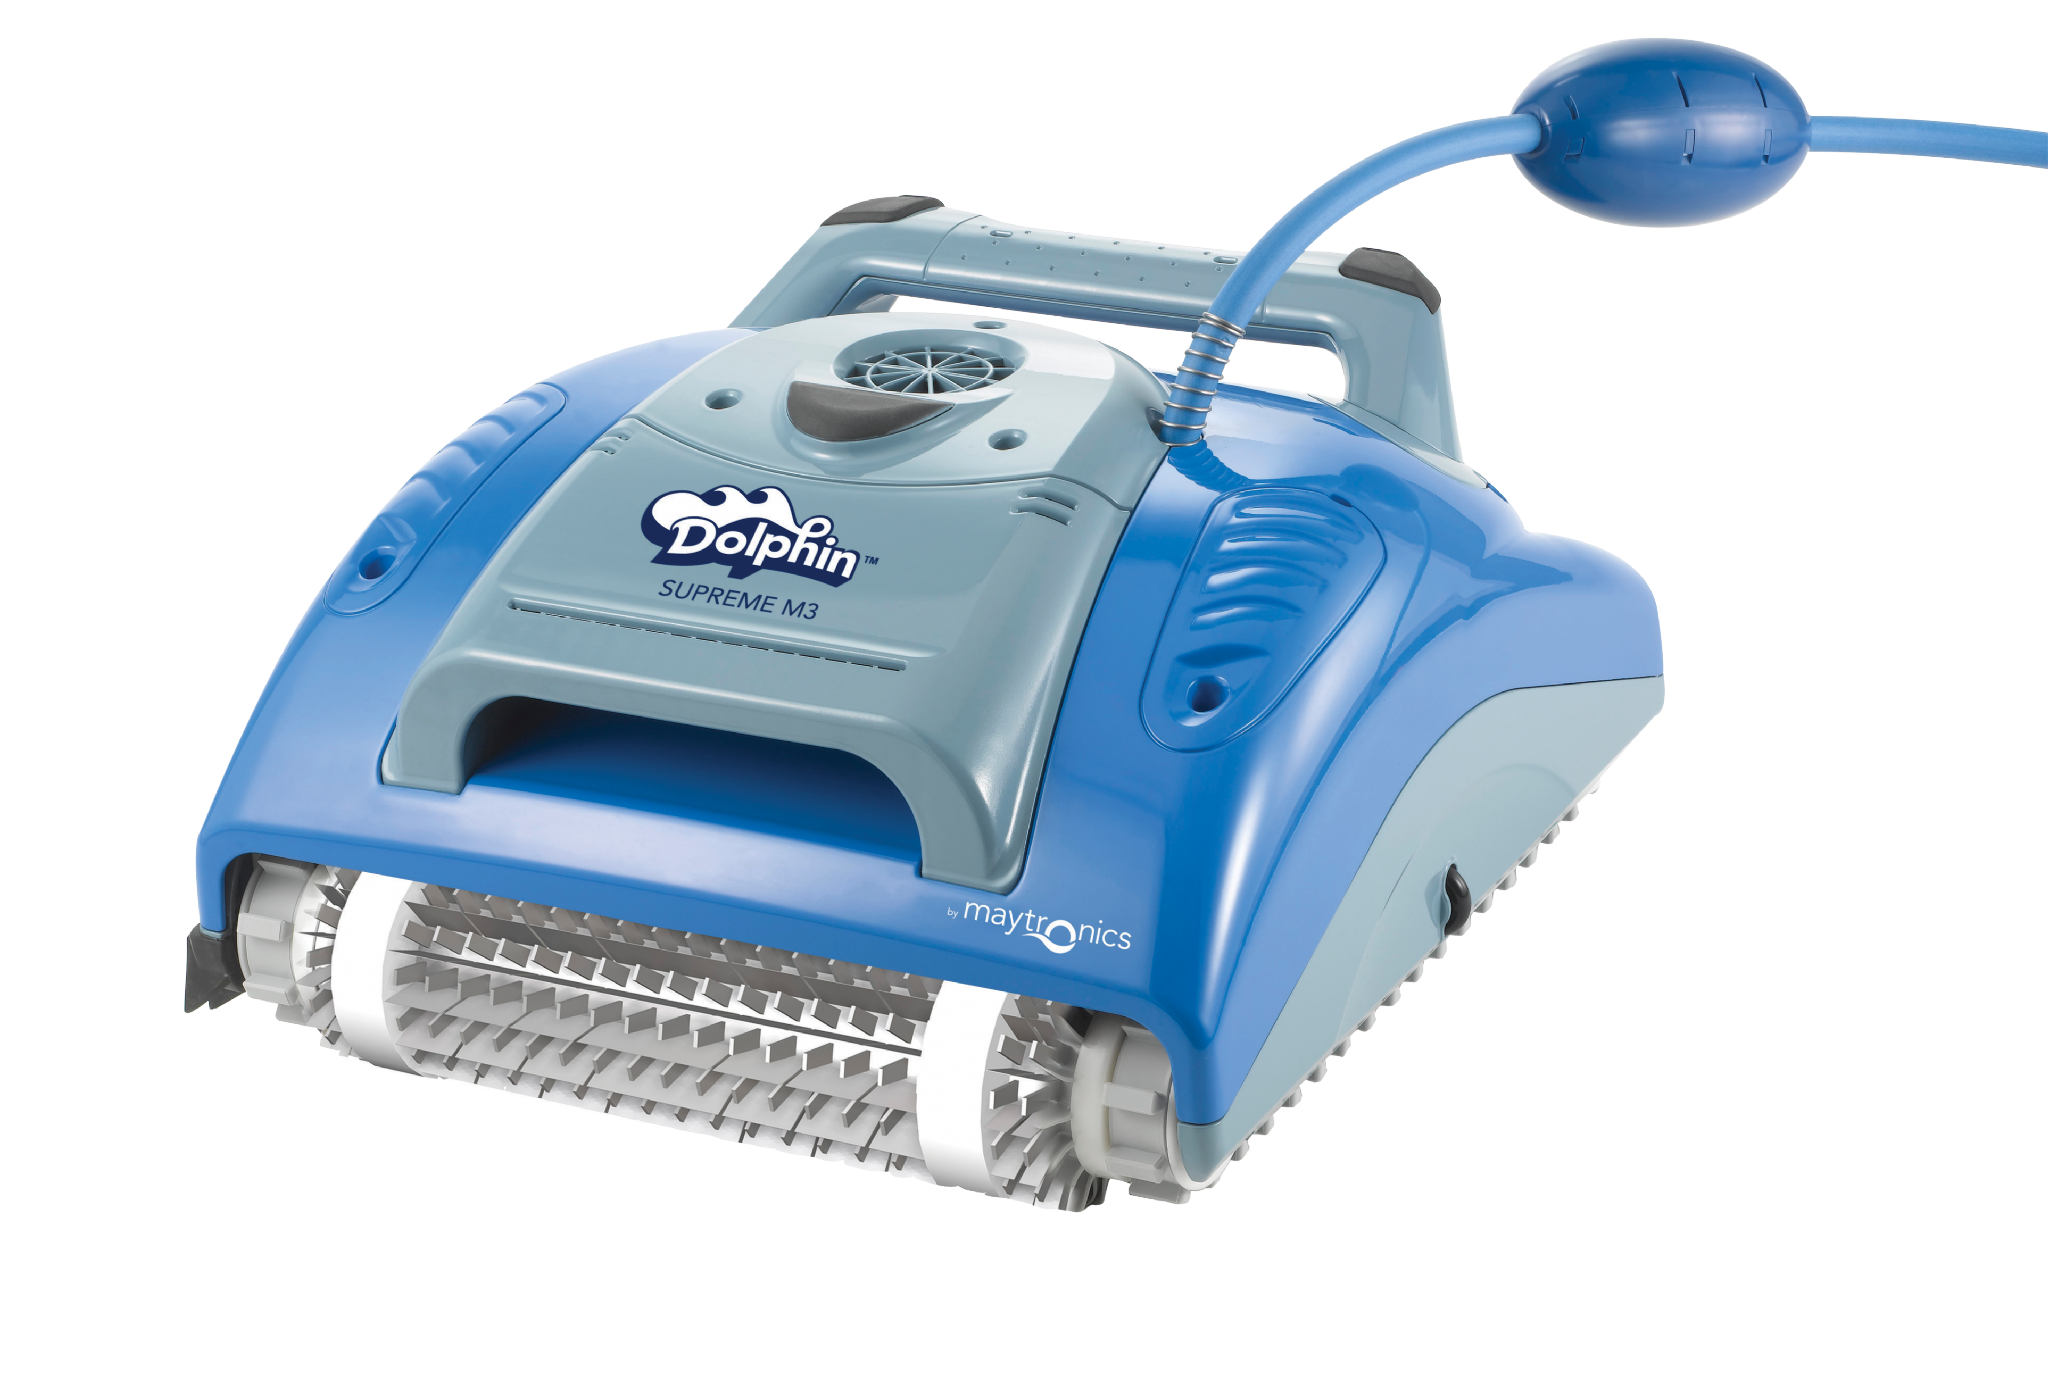 Maytronics Dolphin Pool Cleaner